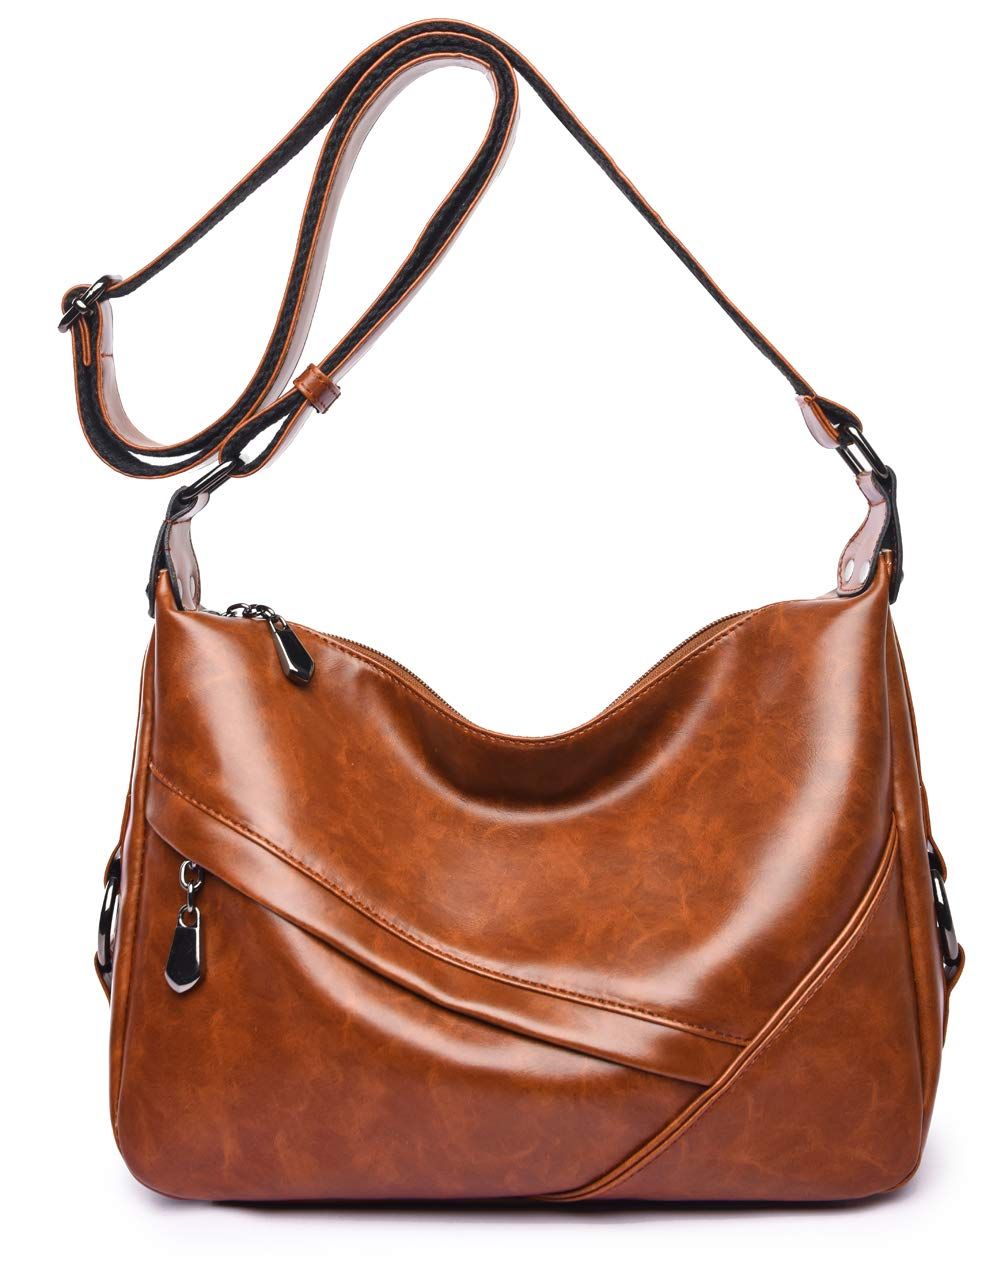 Women's Retro Sling Shoulder Bag from Covelin, Leather Crossbody Tote Handbag New Brown by Covelin (Image #1)